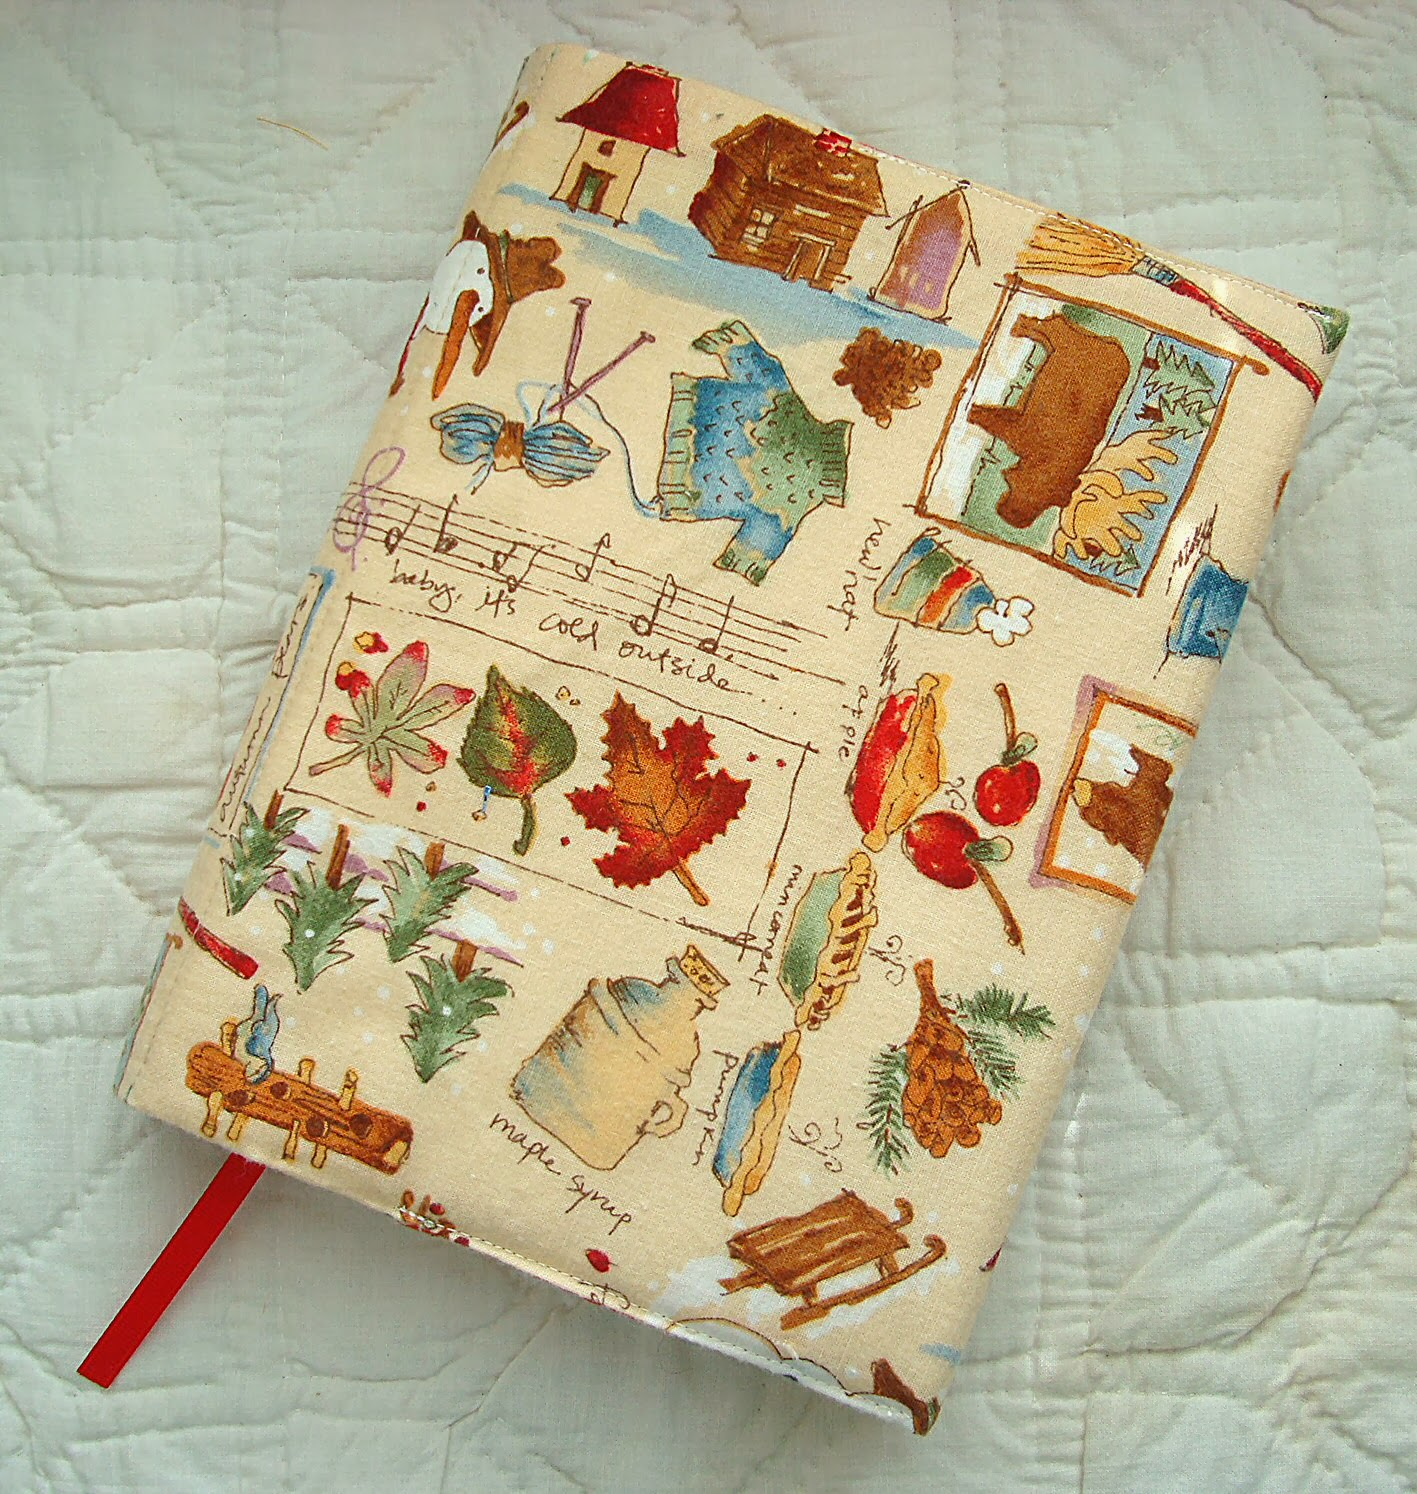 How To Make A Book Cover Cloth ~ Playroom banter peony street free project cloth book cover